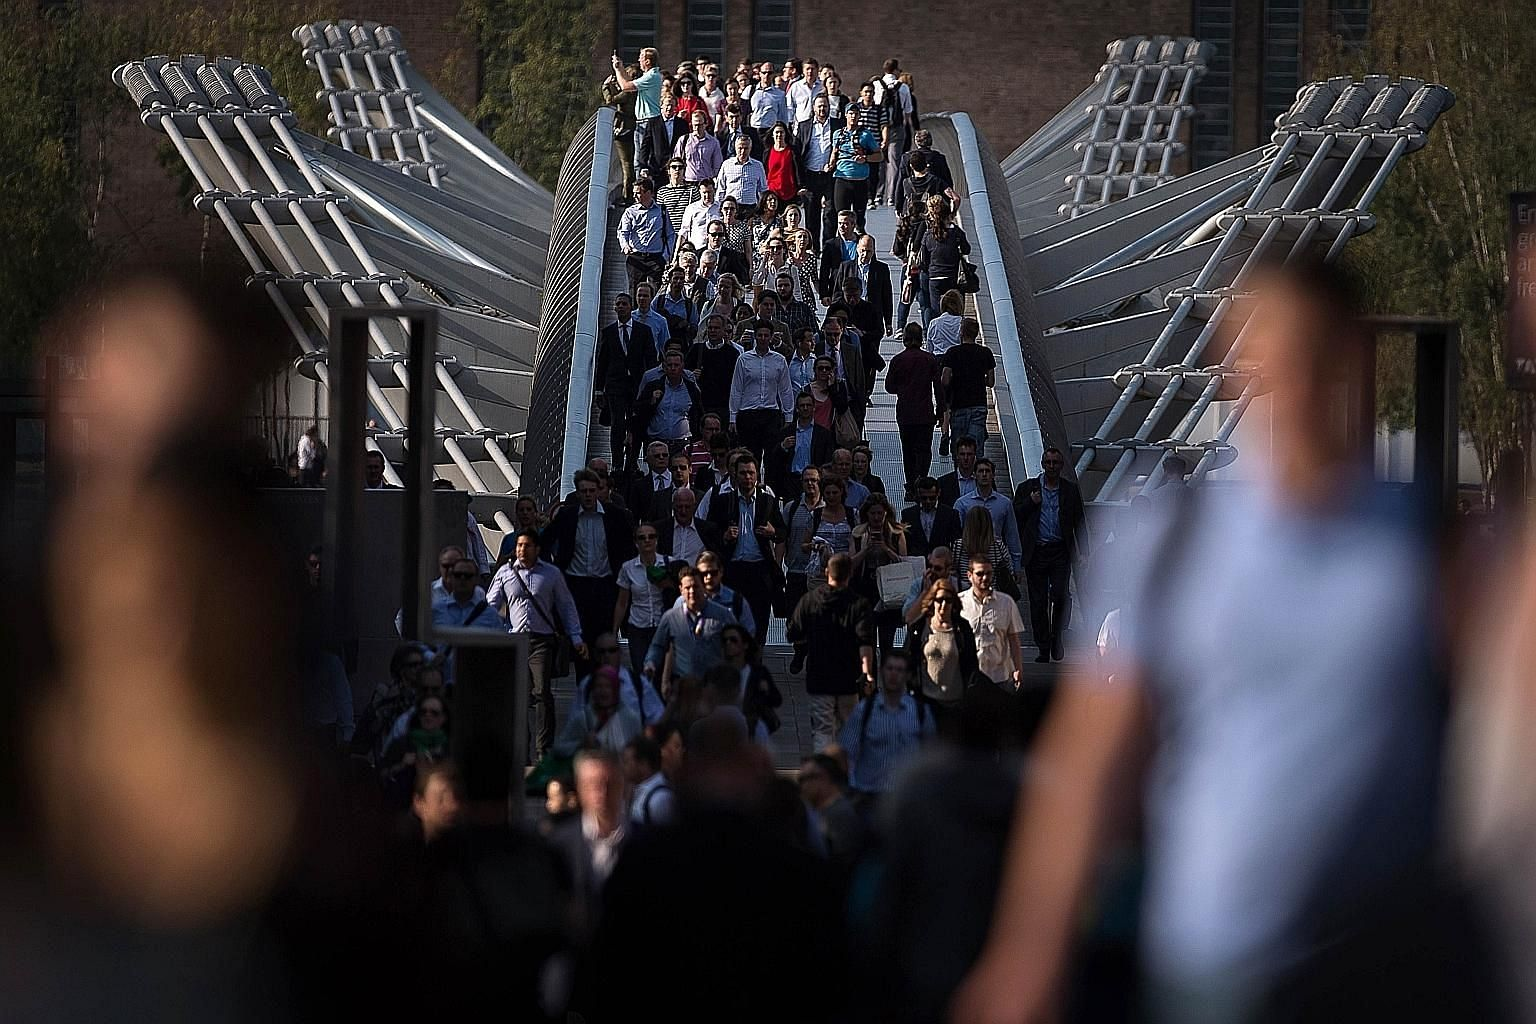 Above: Commuters crossing London's Millennium Bridge as the Tube strike forced many to walk to work. Left: A businessman riding through the centre of the capital to reach his office. Below left: Hundreds queueing for buses at Victoria Station.